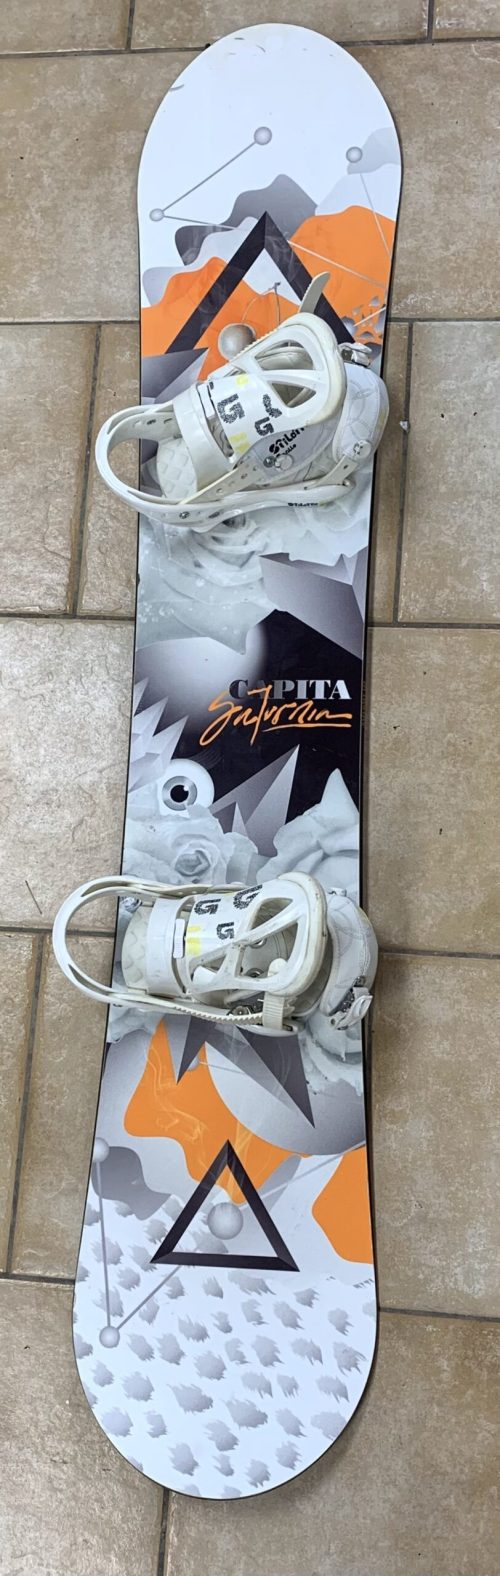 Capita Saturnia Women's Snowboard 152 cm with Burton Stiletto Binding